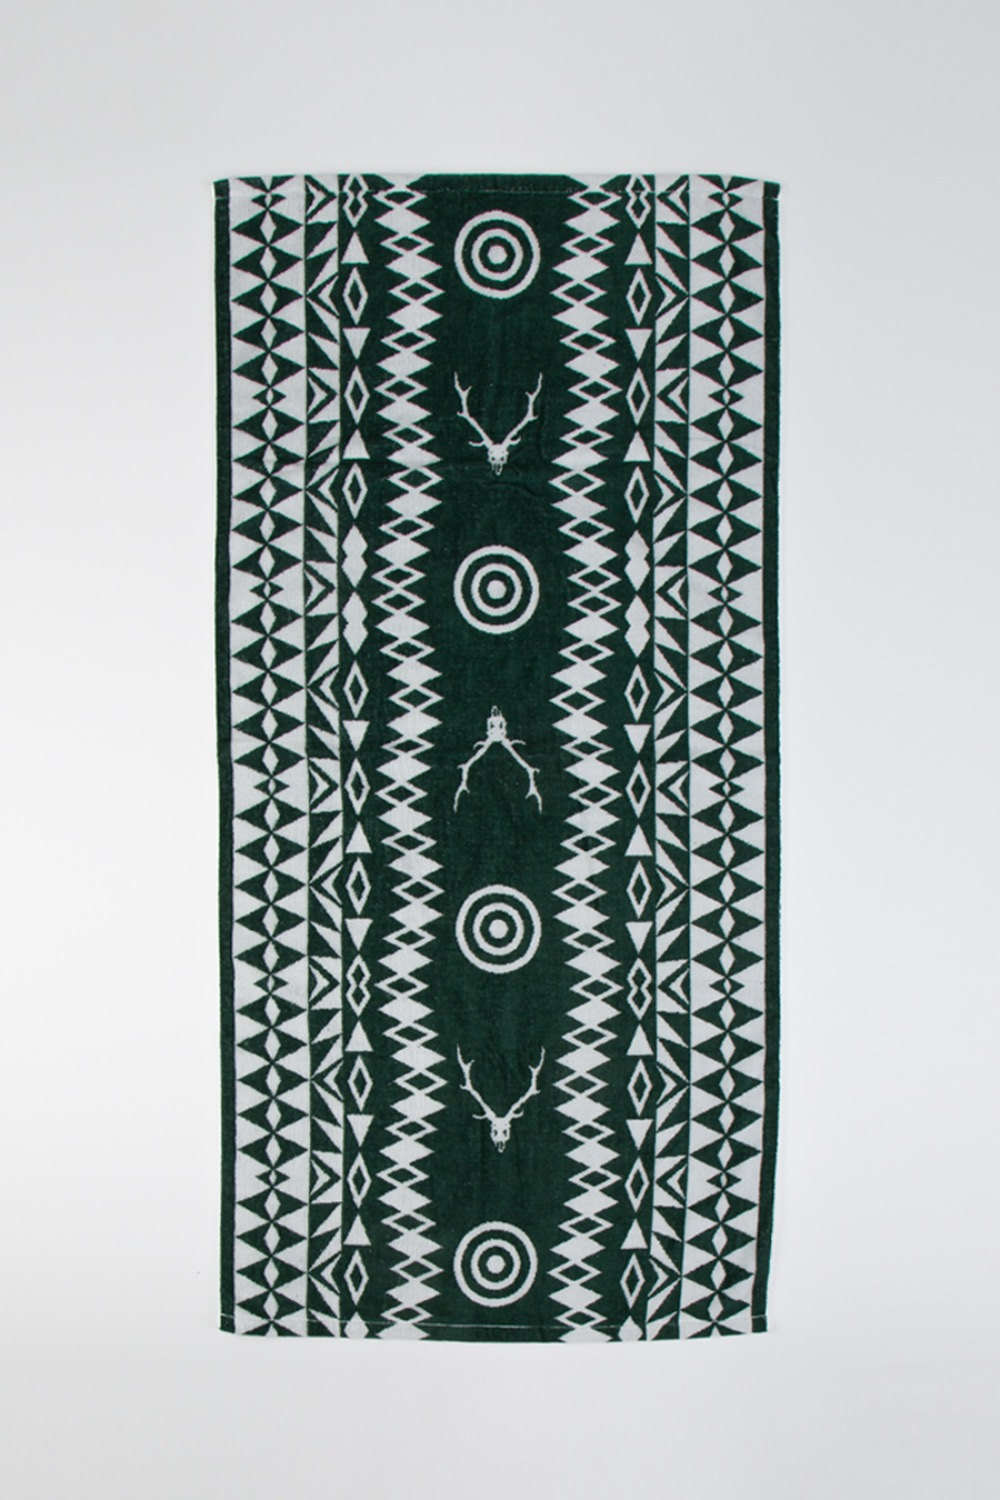 BATH TOWEL - COTTON JACQUARD/TARGET&SKULL